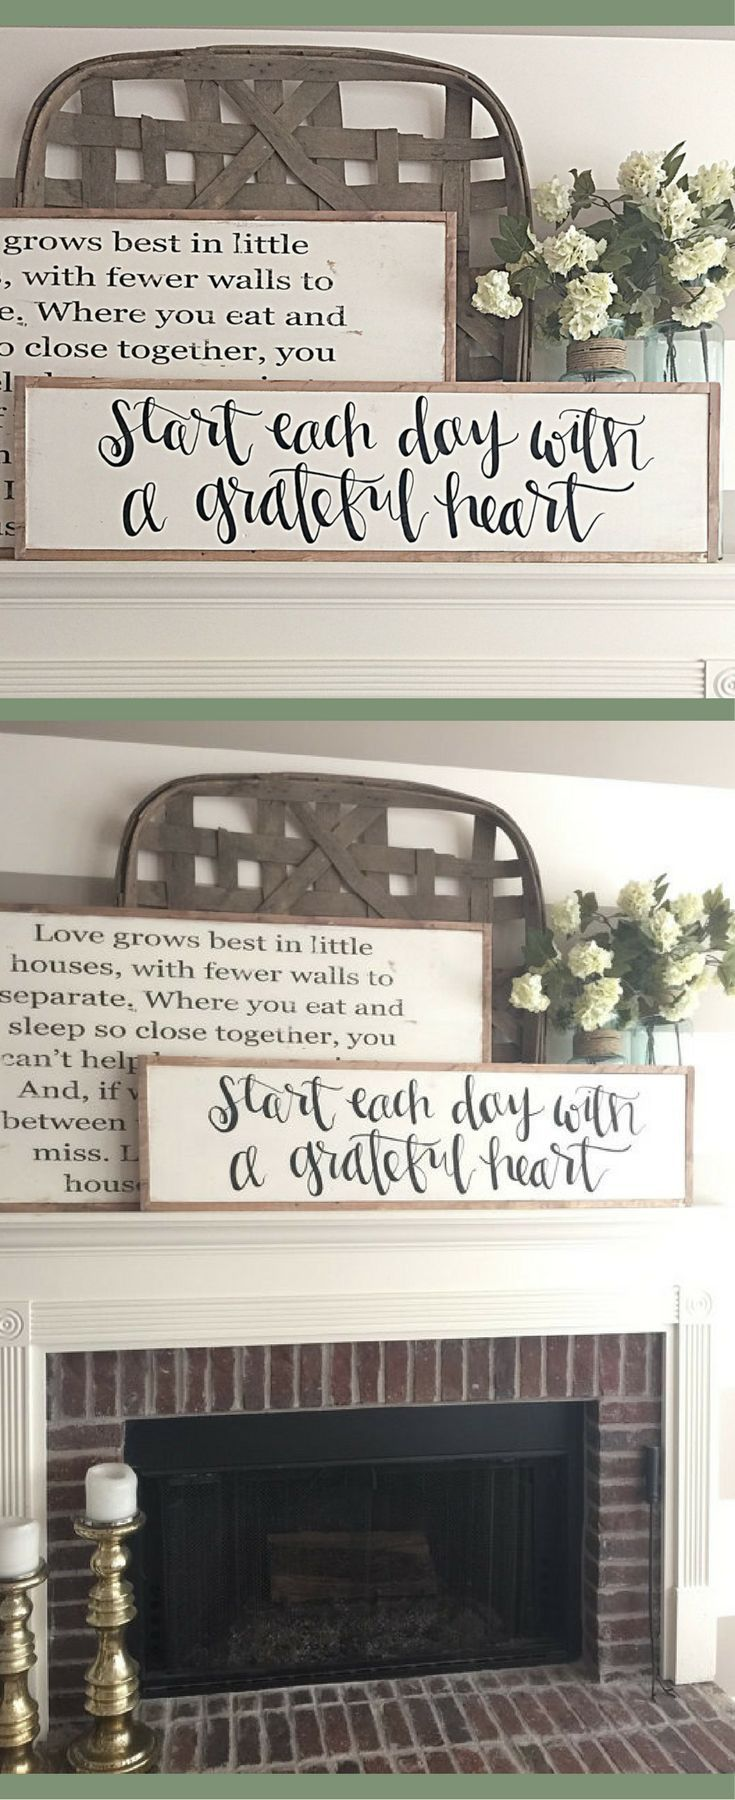 Start Each Day With A Grateful Heart | | Inspirational Sign | Reclaimed Wood | Rustic Home Decor | Hand Painted living room Sign | Rustic Wood Sign | Farmhouse sign | Gallery Wall | Farmhouse wall decor #ad